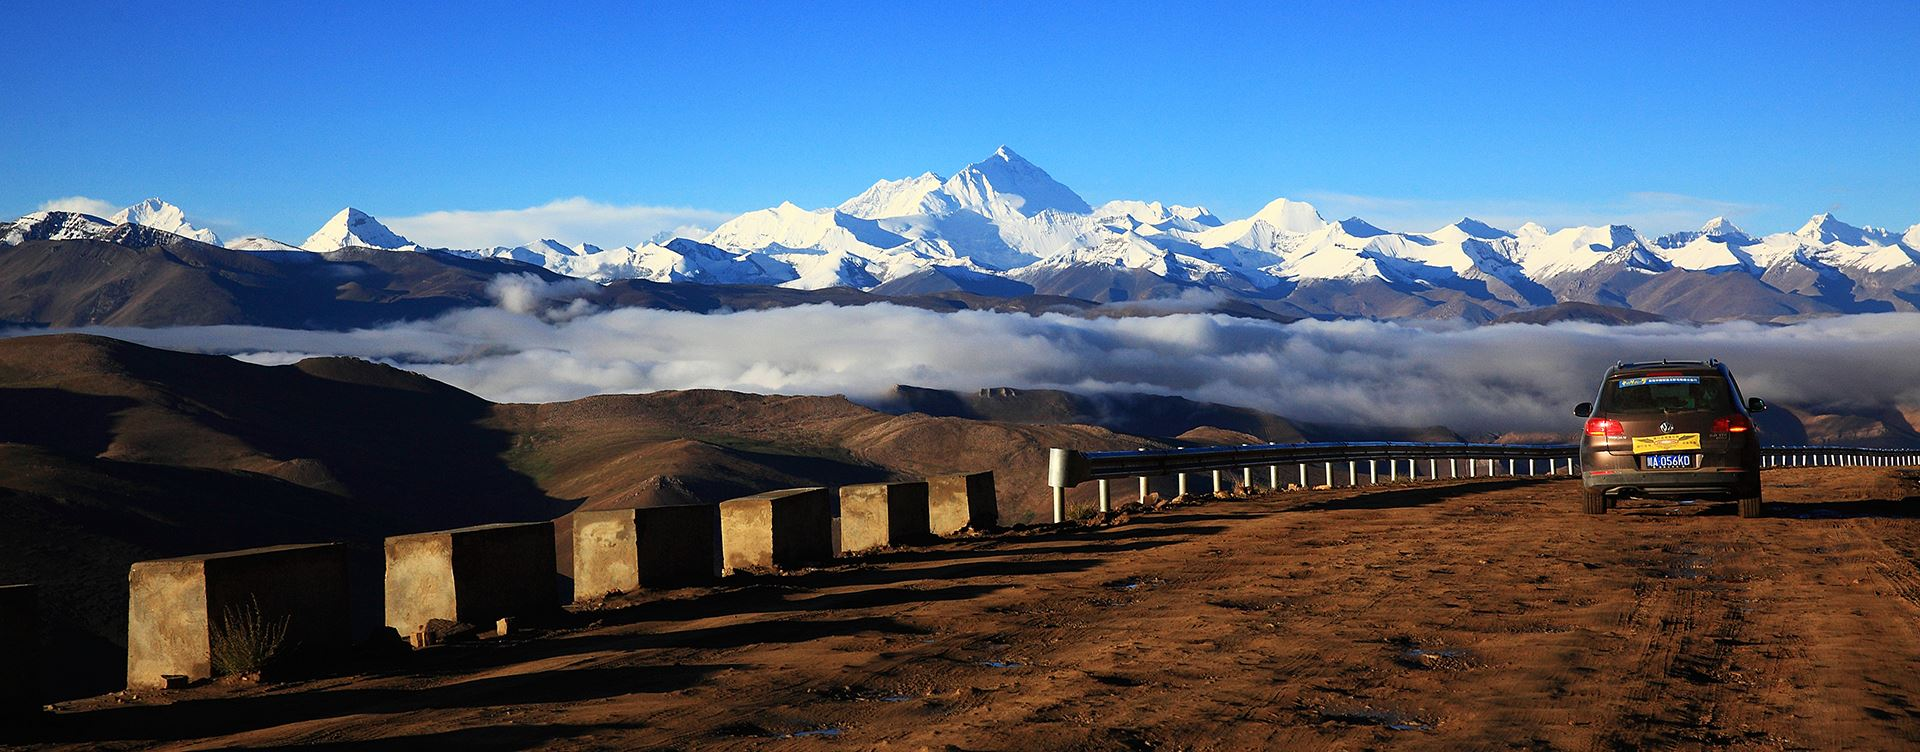 Overland Tour from Tibet to Xinjiang with Everest BC and Trekking around Kailash